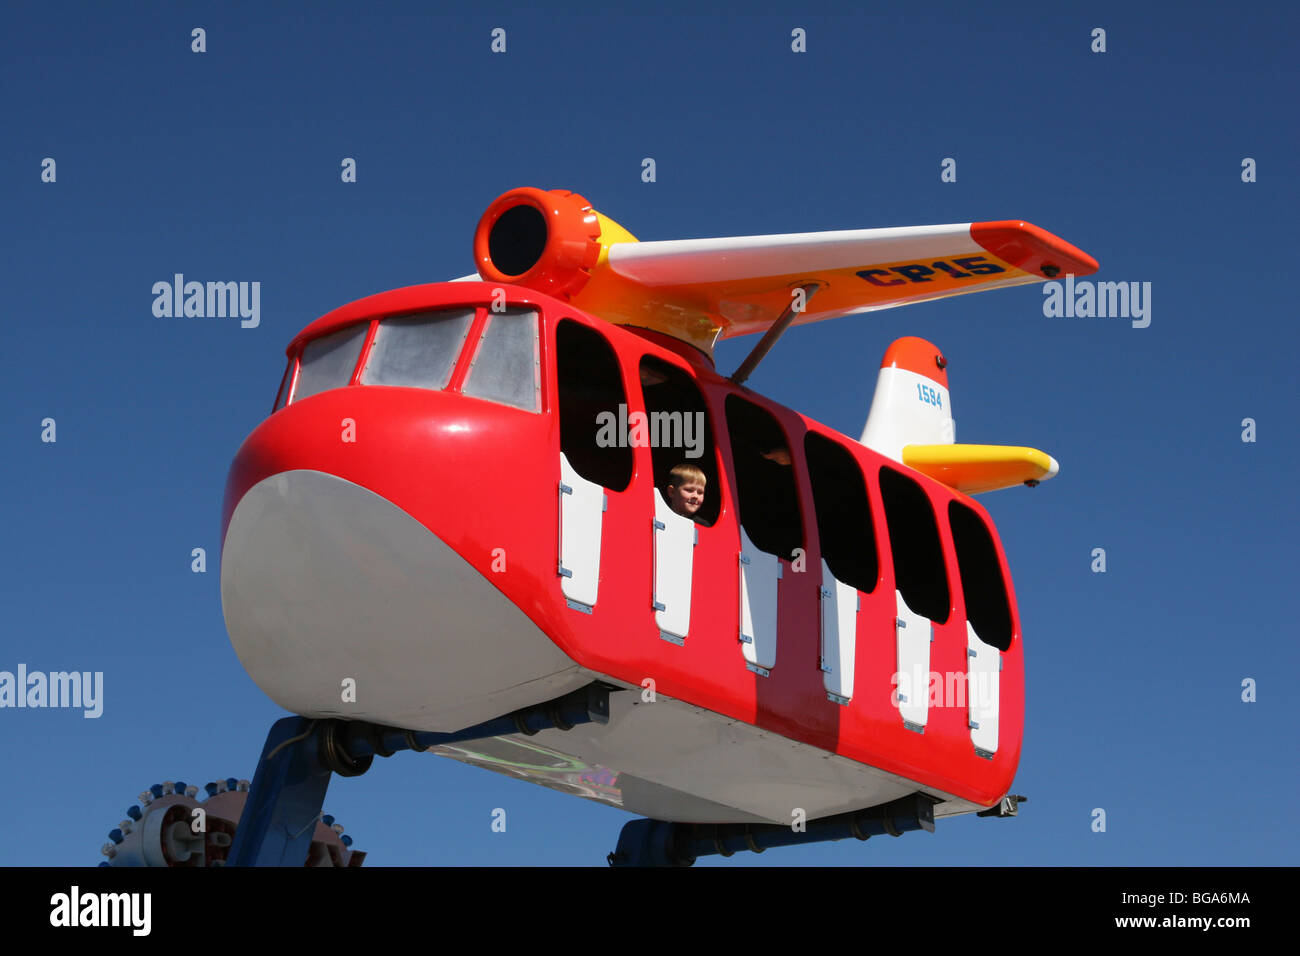 crazy-plane-flying-bus-airplane-carnival